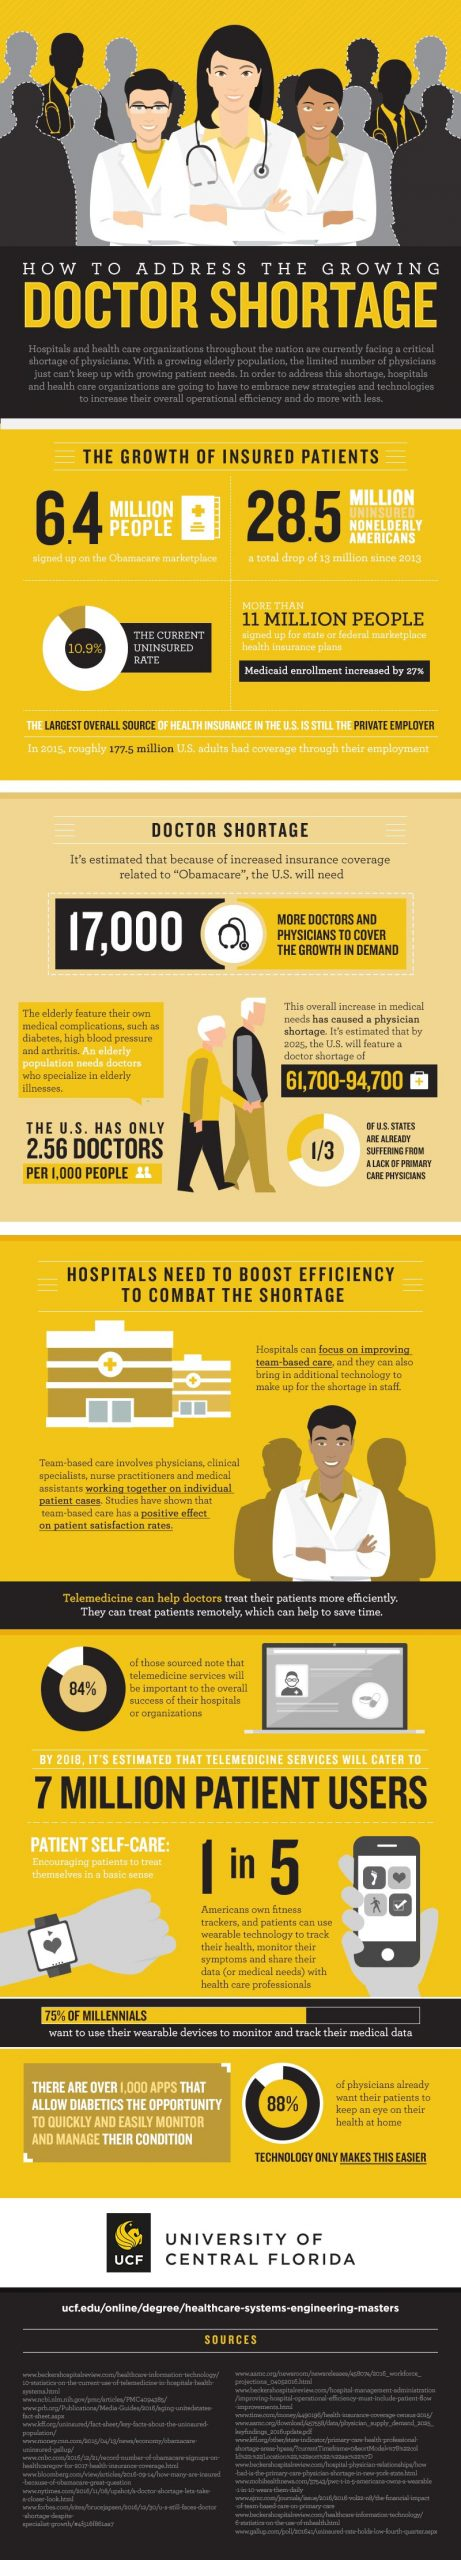 Infographic about addressing the growing doctor shortage. Description and in-image text below image.